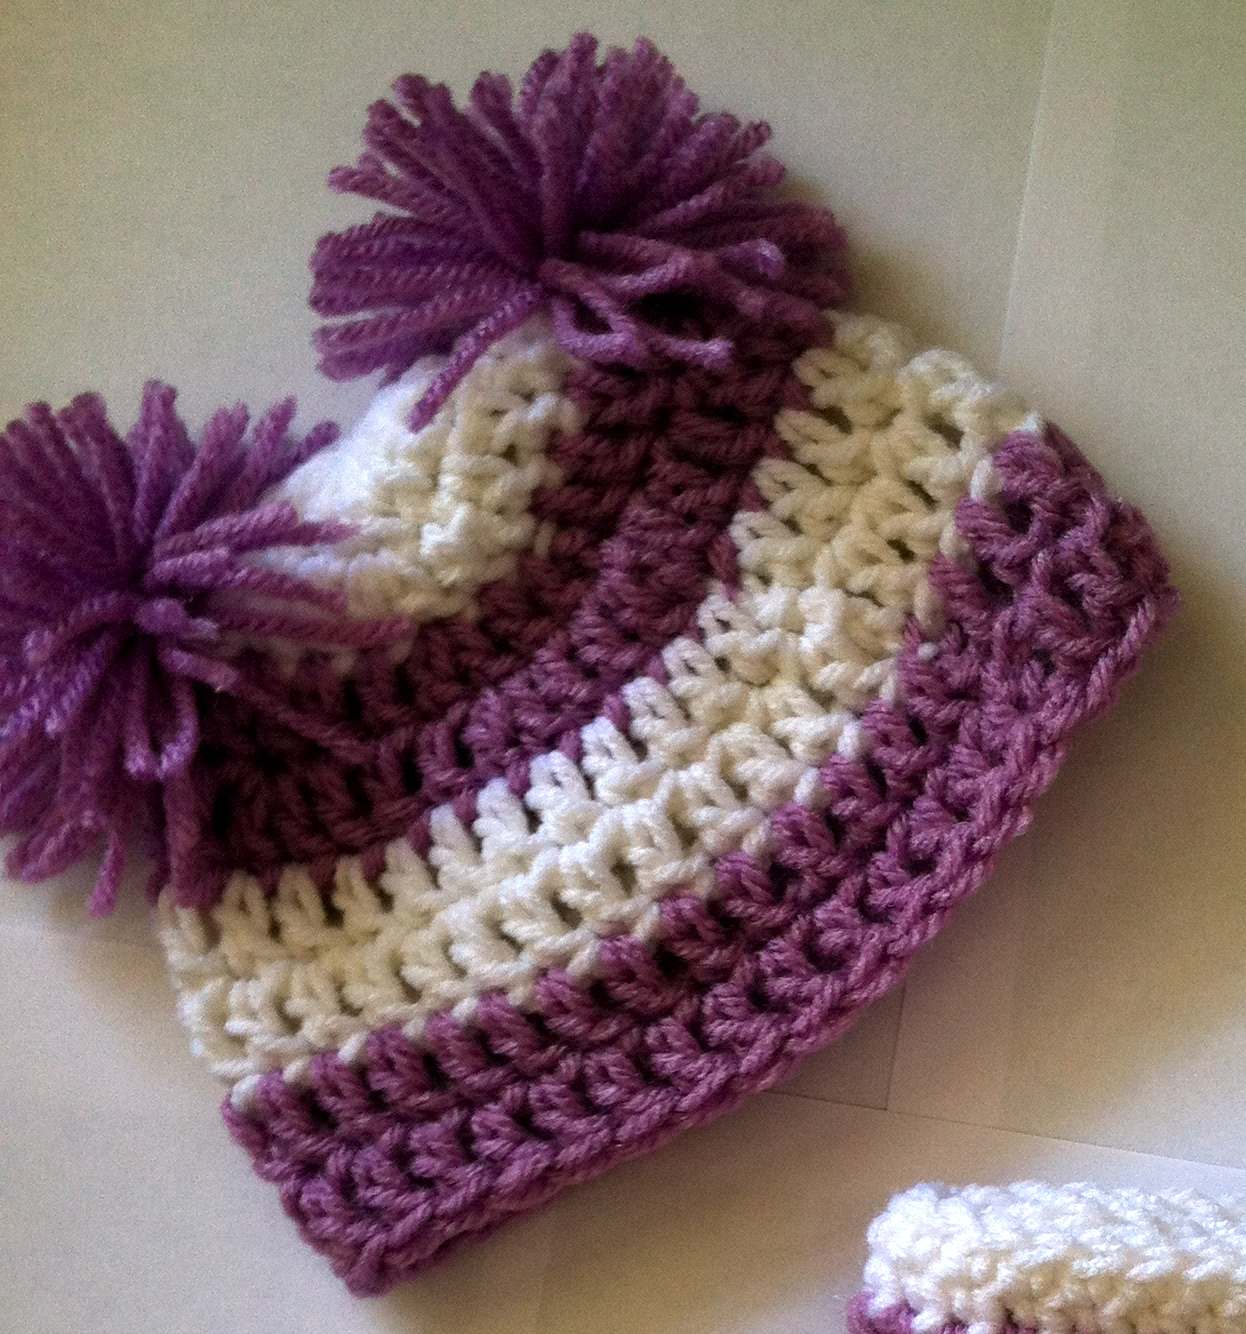 Free Crochet Patterns : Basic Beanie Free Crochet Pattern ? Family Bugs Blogging